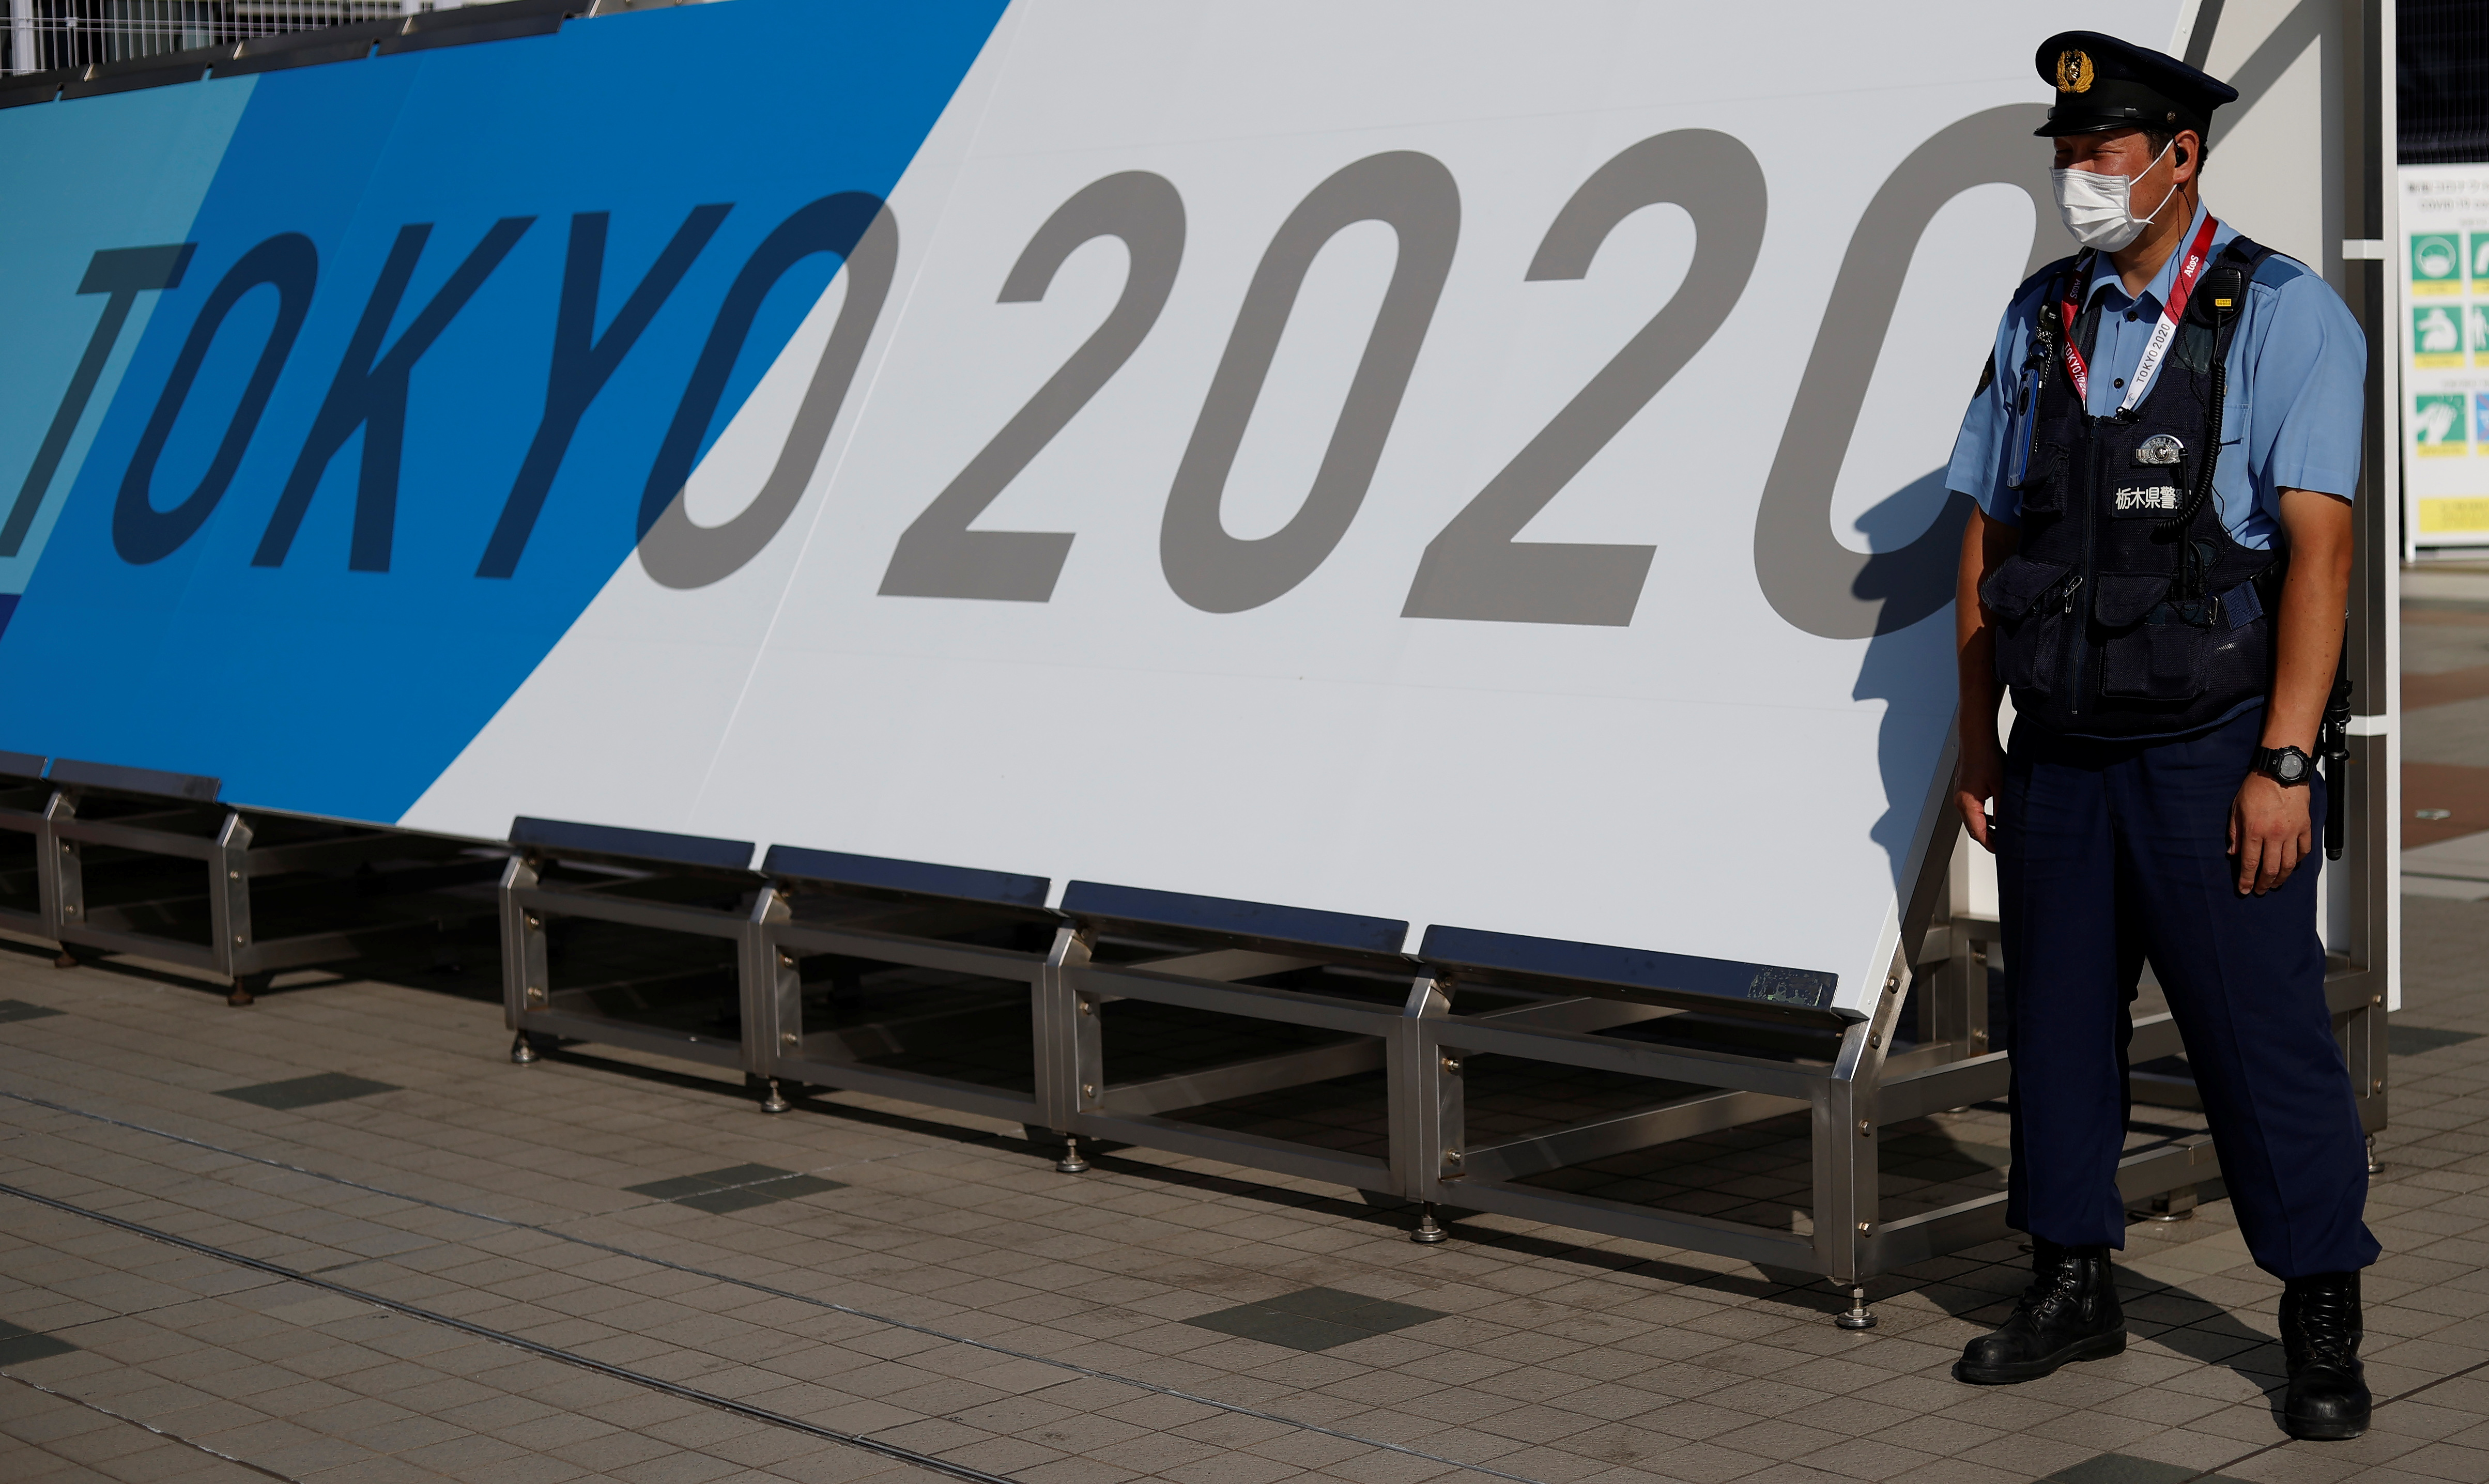 A police officer wearing a face mask stands near the entrance of the Main Press Centre, ahead of the Tokyo 2020 Olympic Games, in Tokyo, Japan, July 19, 2021. REUTERS/Phil Noble